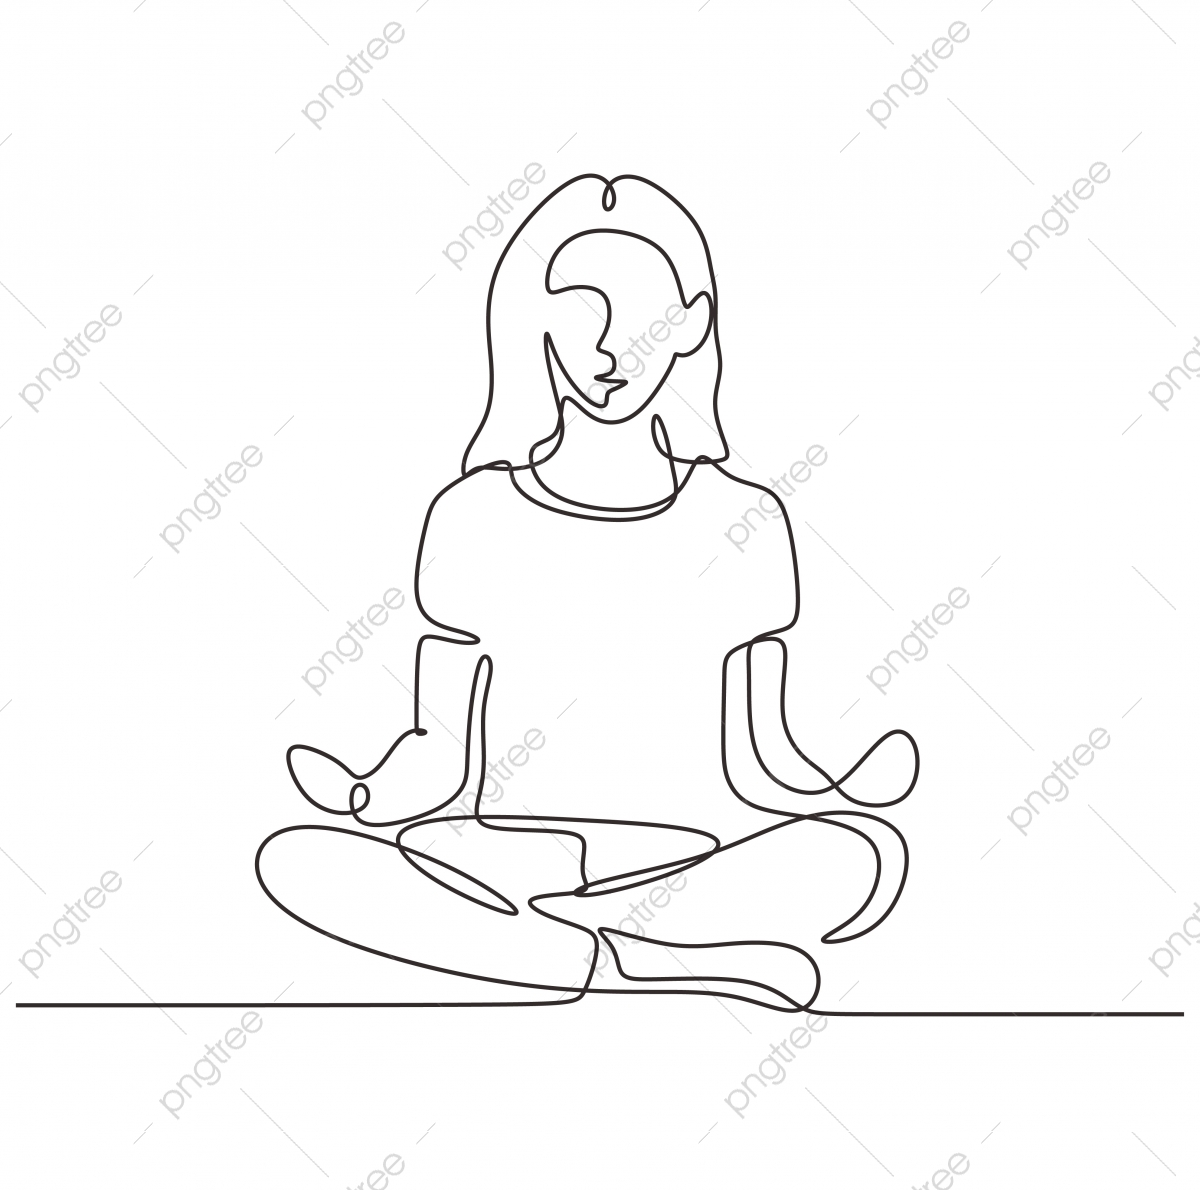 Continuous One Line Drawing Of Girl Doing Yoga Sitting In Lotus Woman Relaxation And Meditation For Healthy Body And Positive Mind Vector Illustration Minimalism Sport Theme Design Vector Yoga Isolated Png And